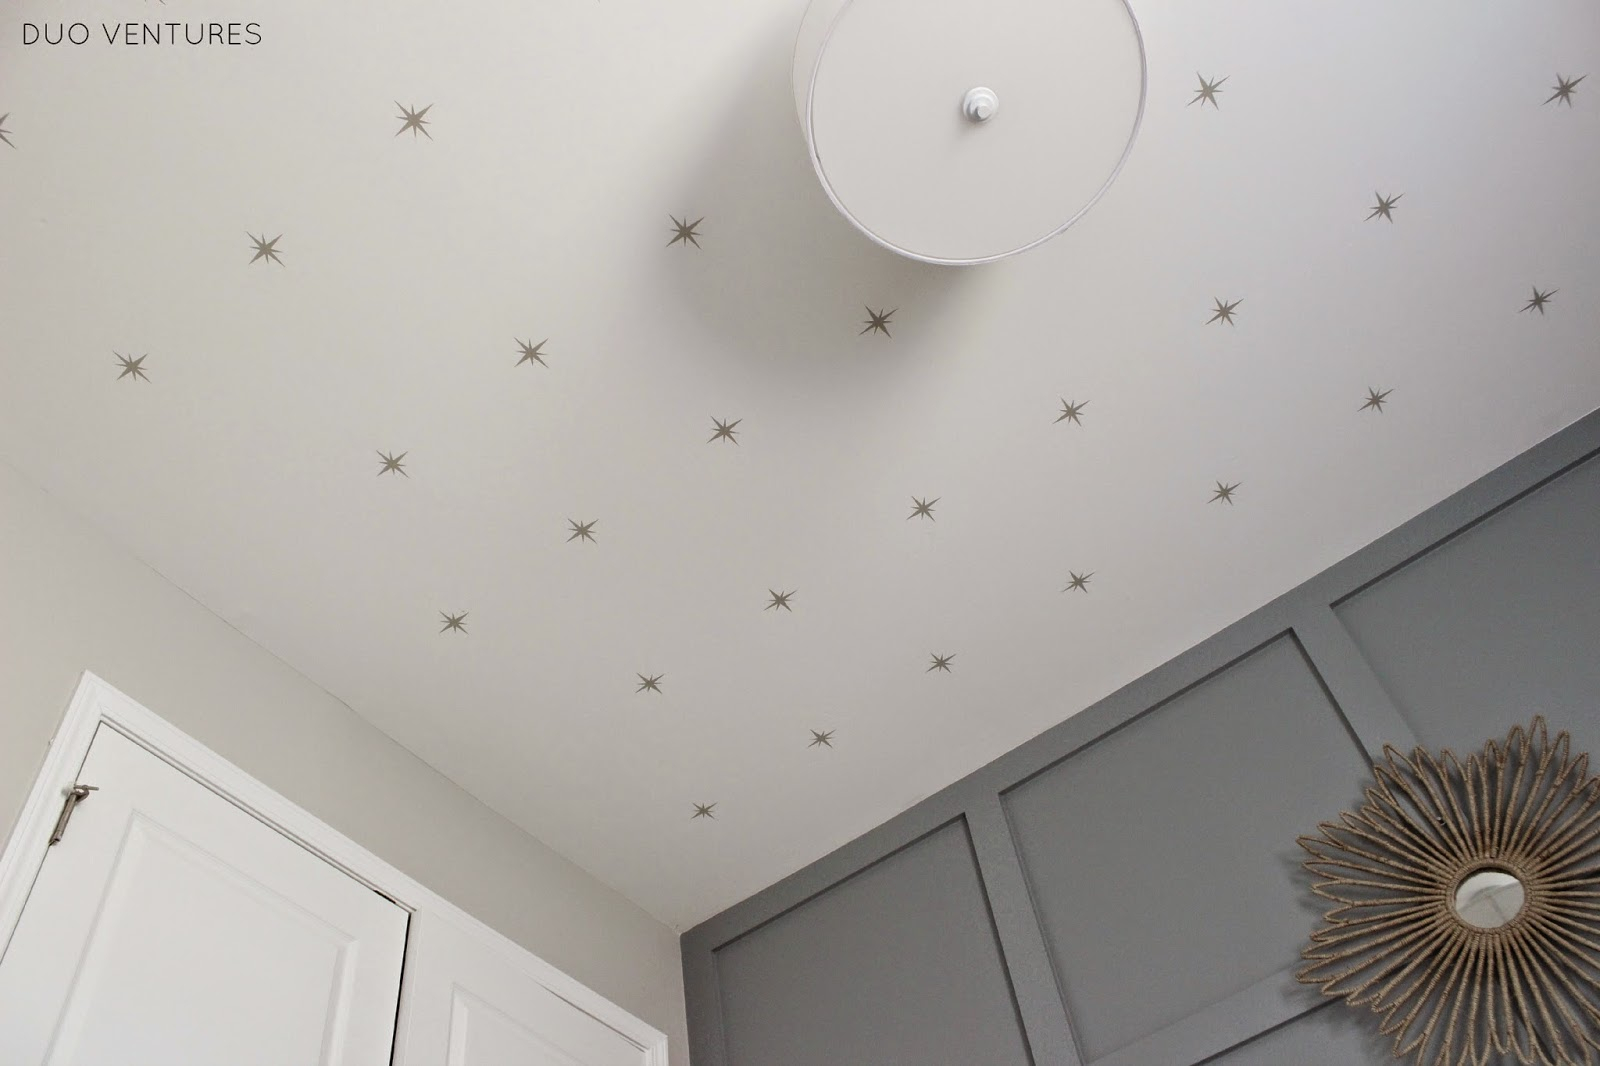 how to make ceiling look like stars